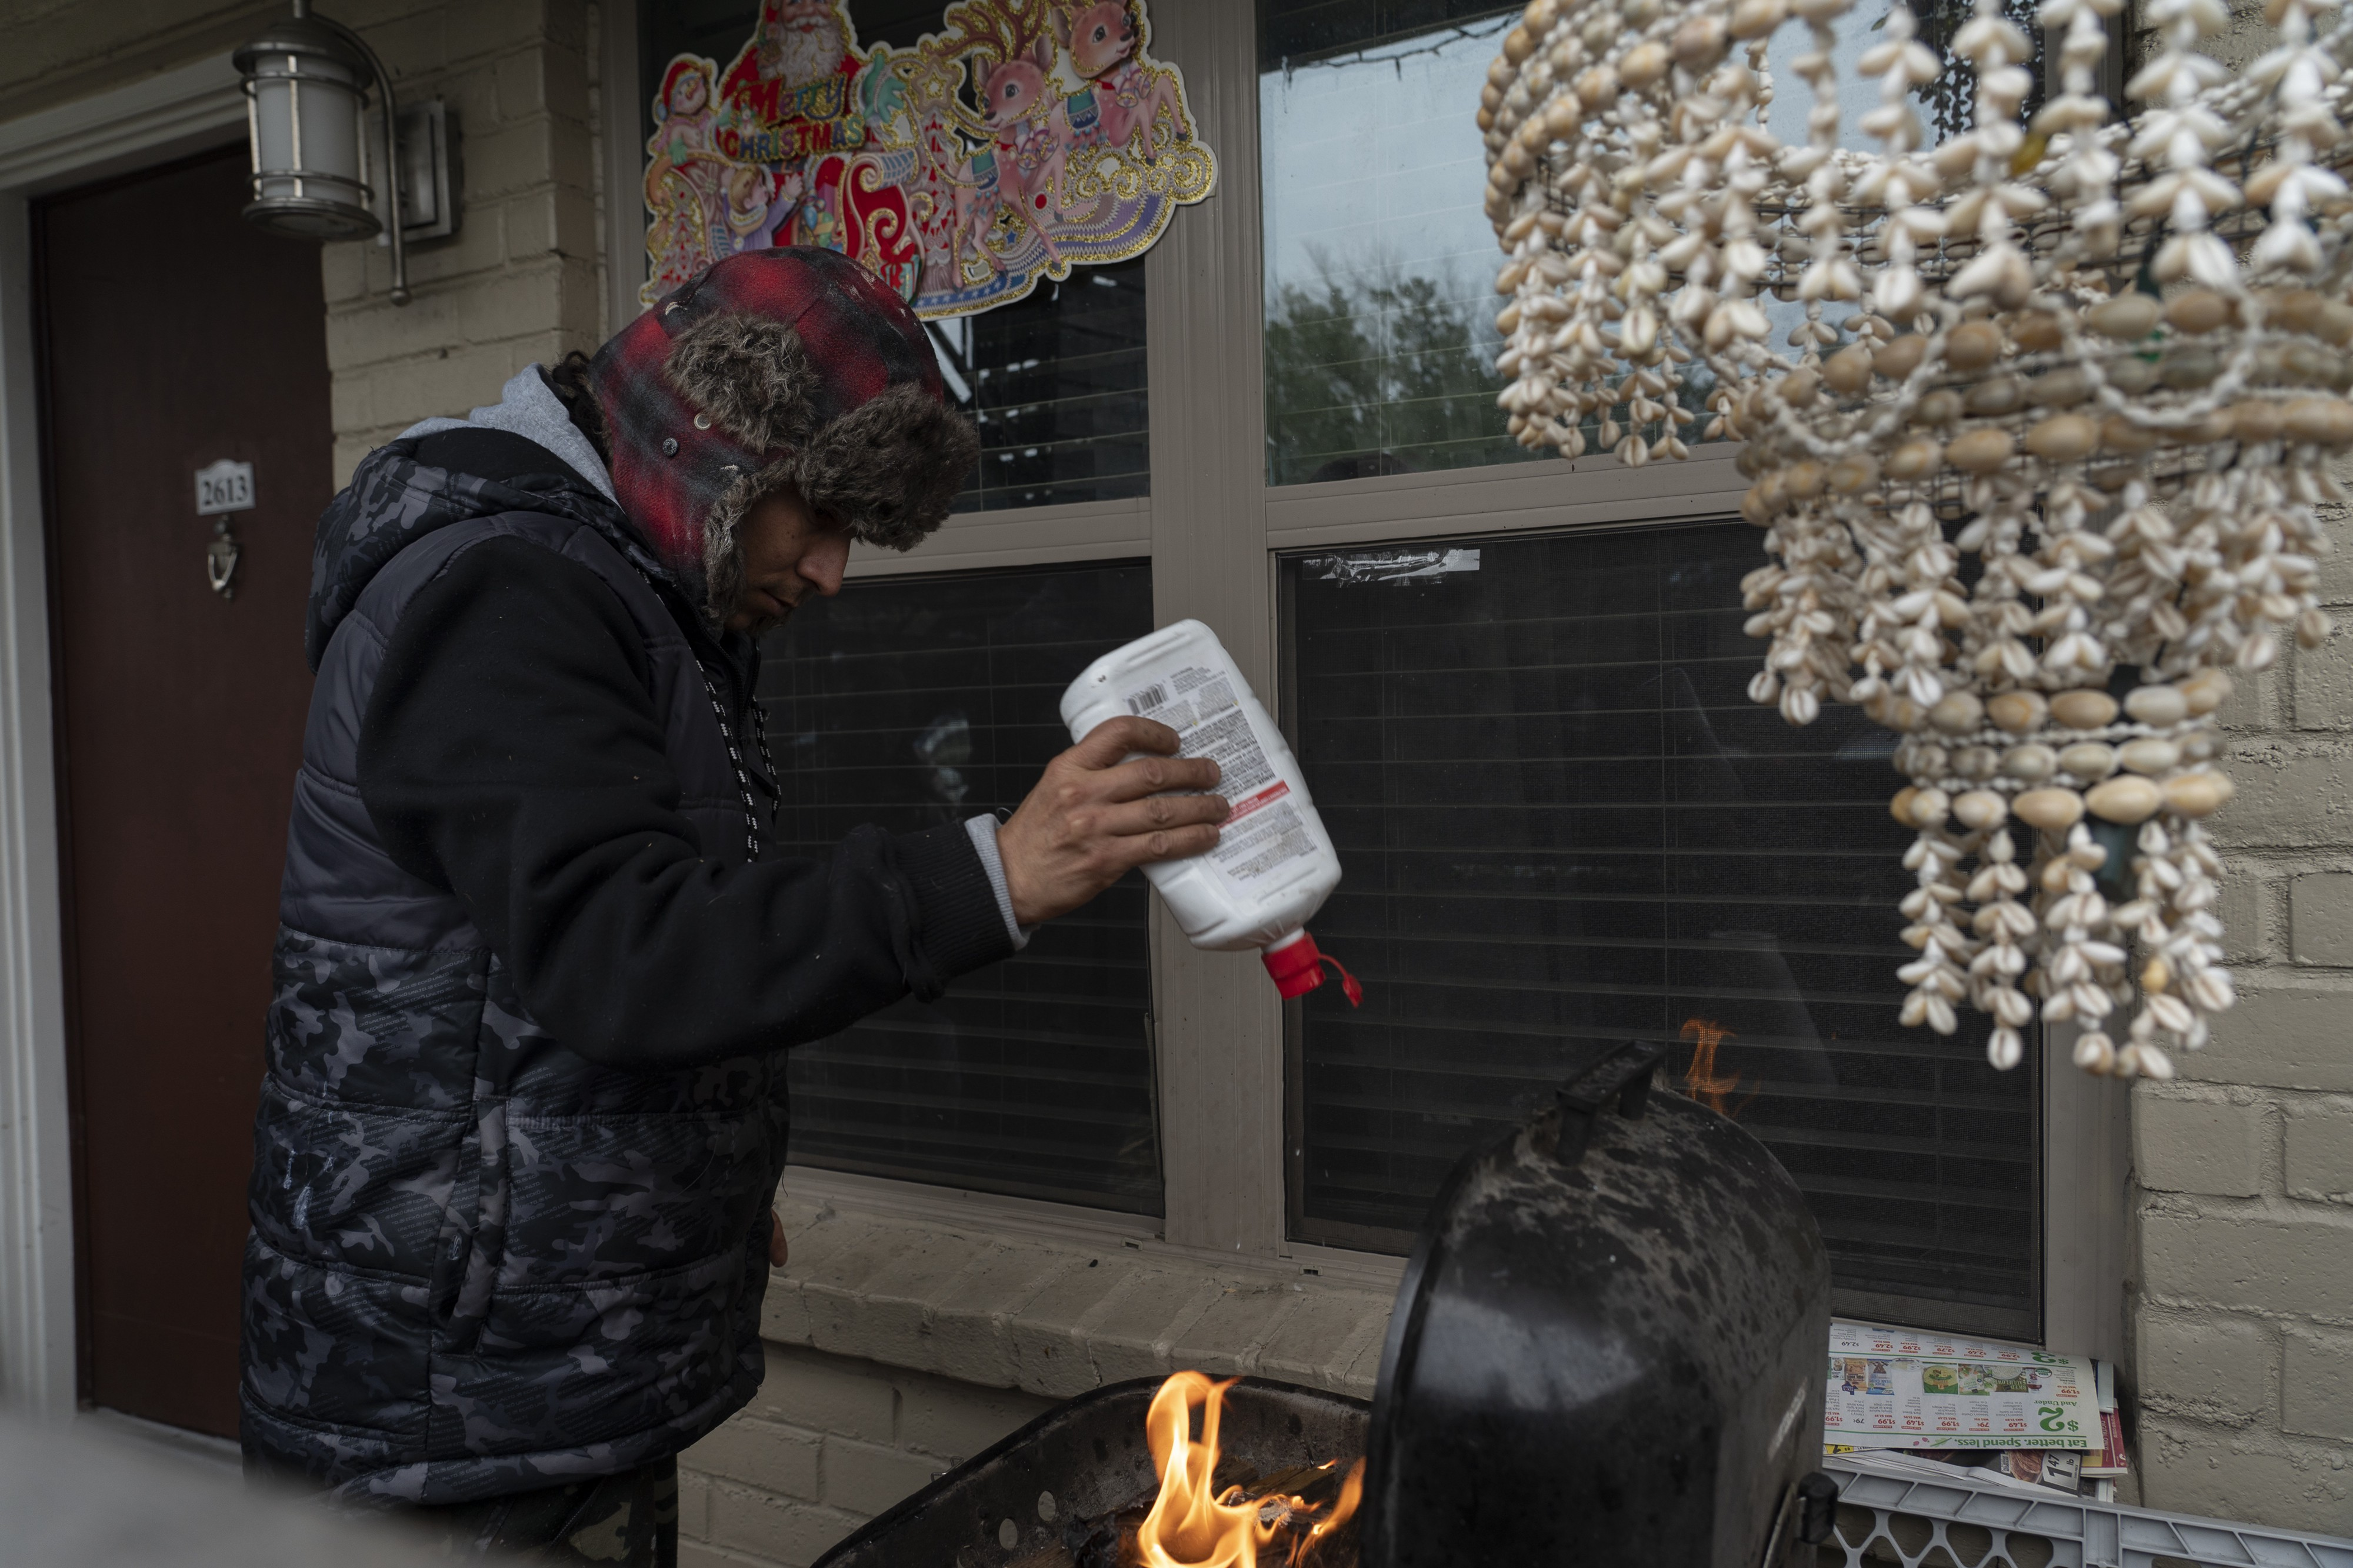 Victor Zelaya tries to start a fire on a barbecue grill during power outage caused by the winter storm on February 16, 2021 in Houston, Texas